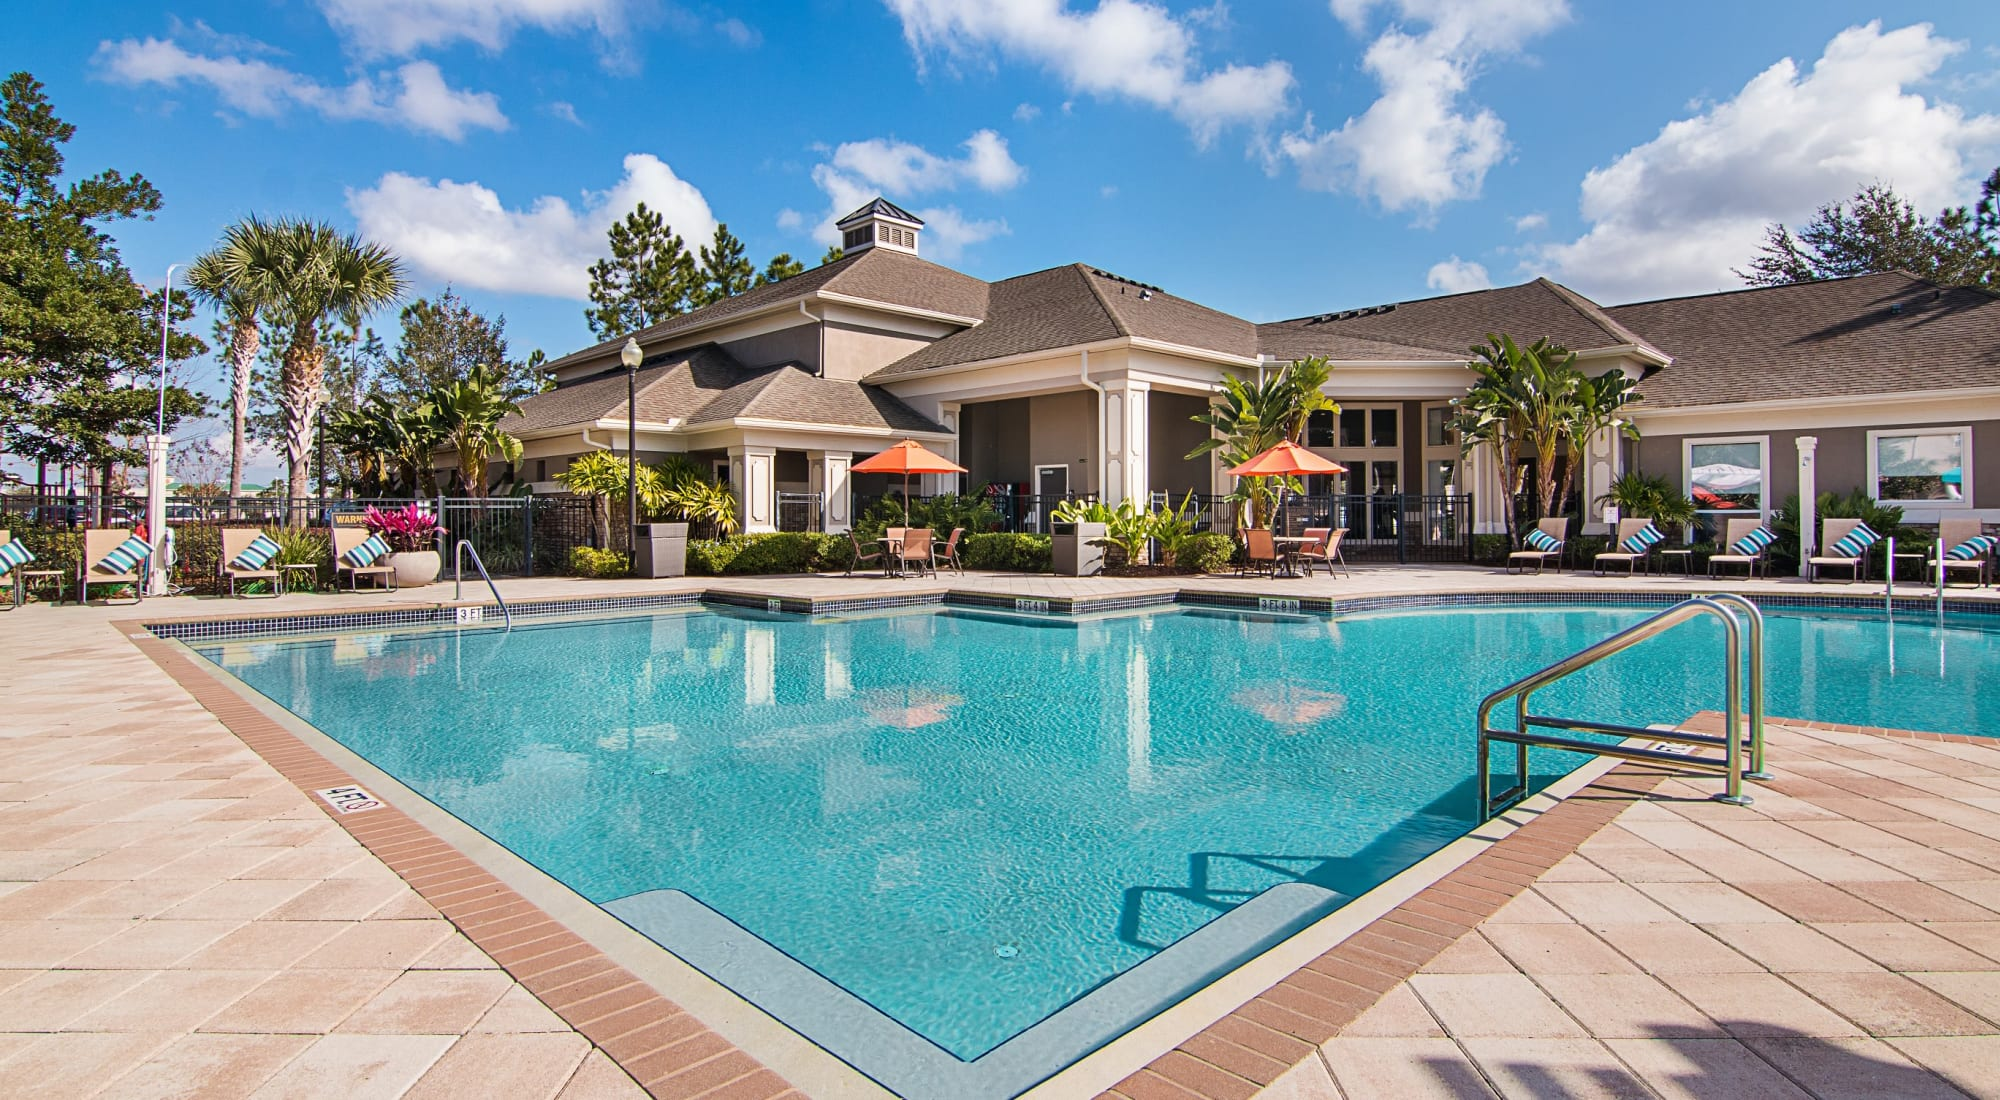 Apartments at Landings at Four Corners in Davenport, Florida